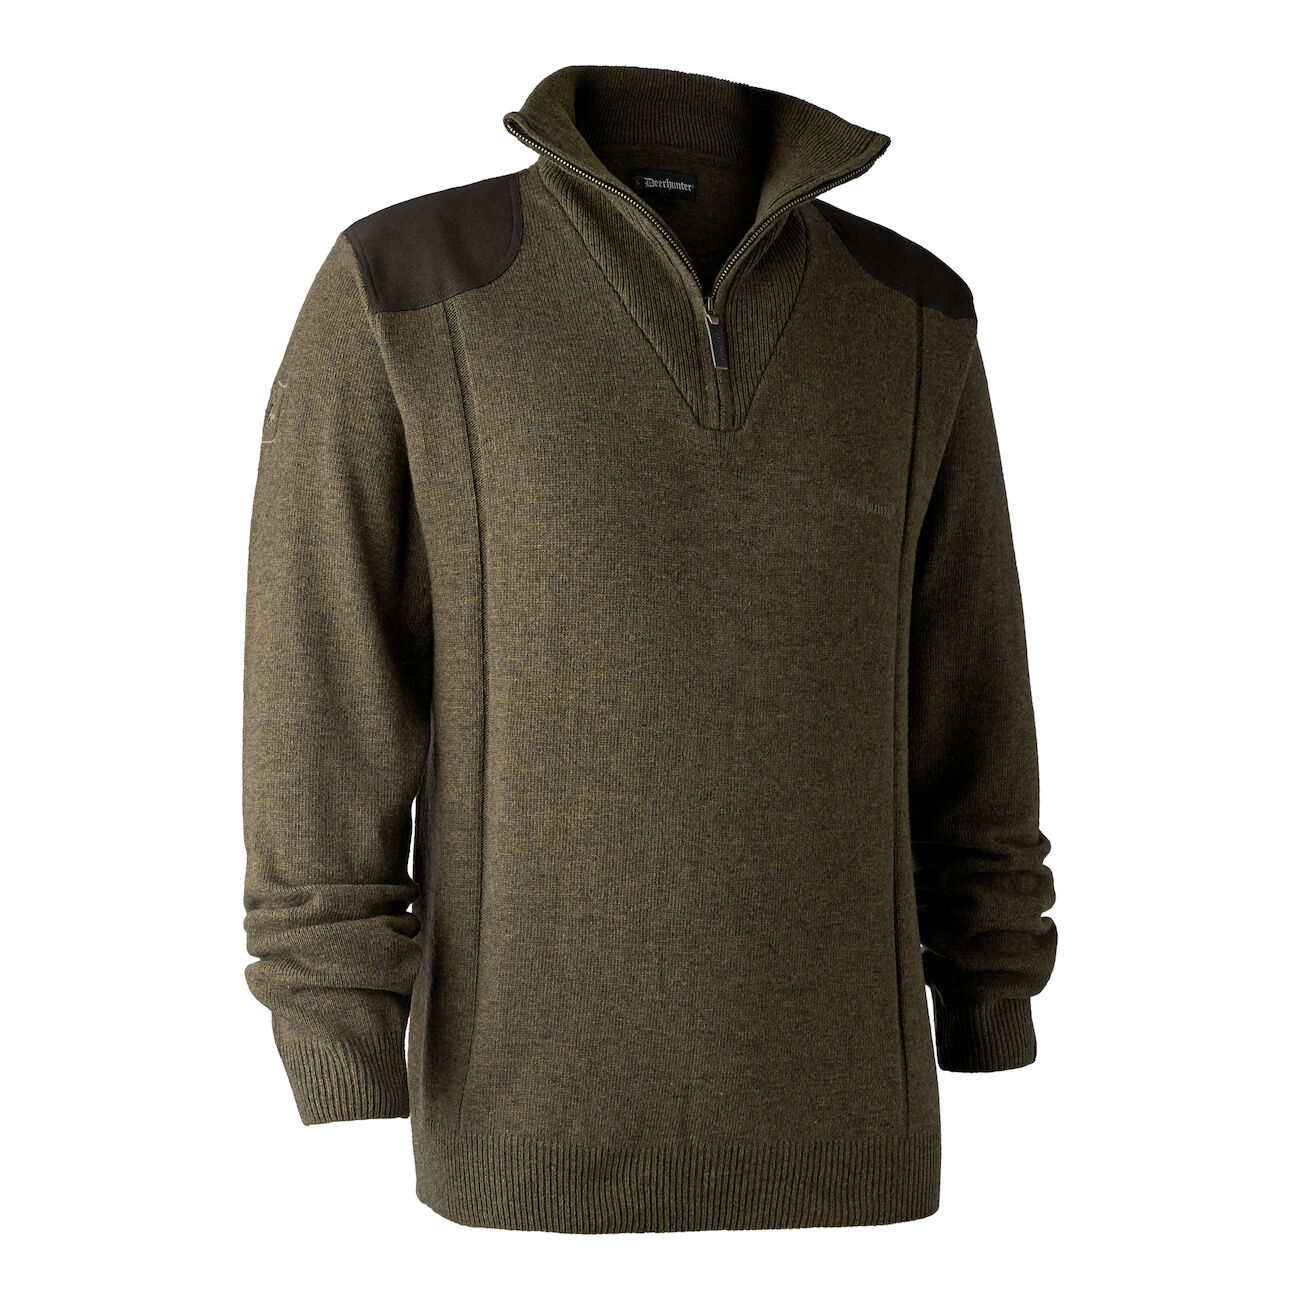 Deerhunter Sheffield Knit with Zip Neck - Cypress